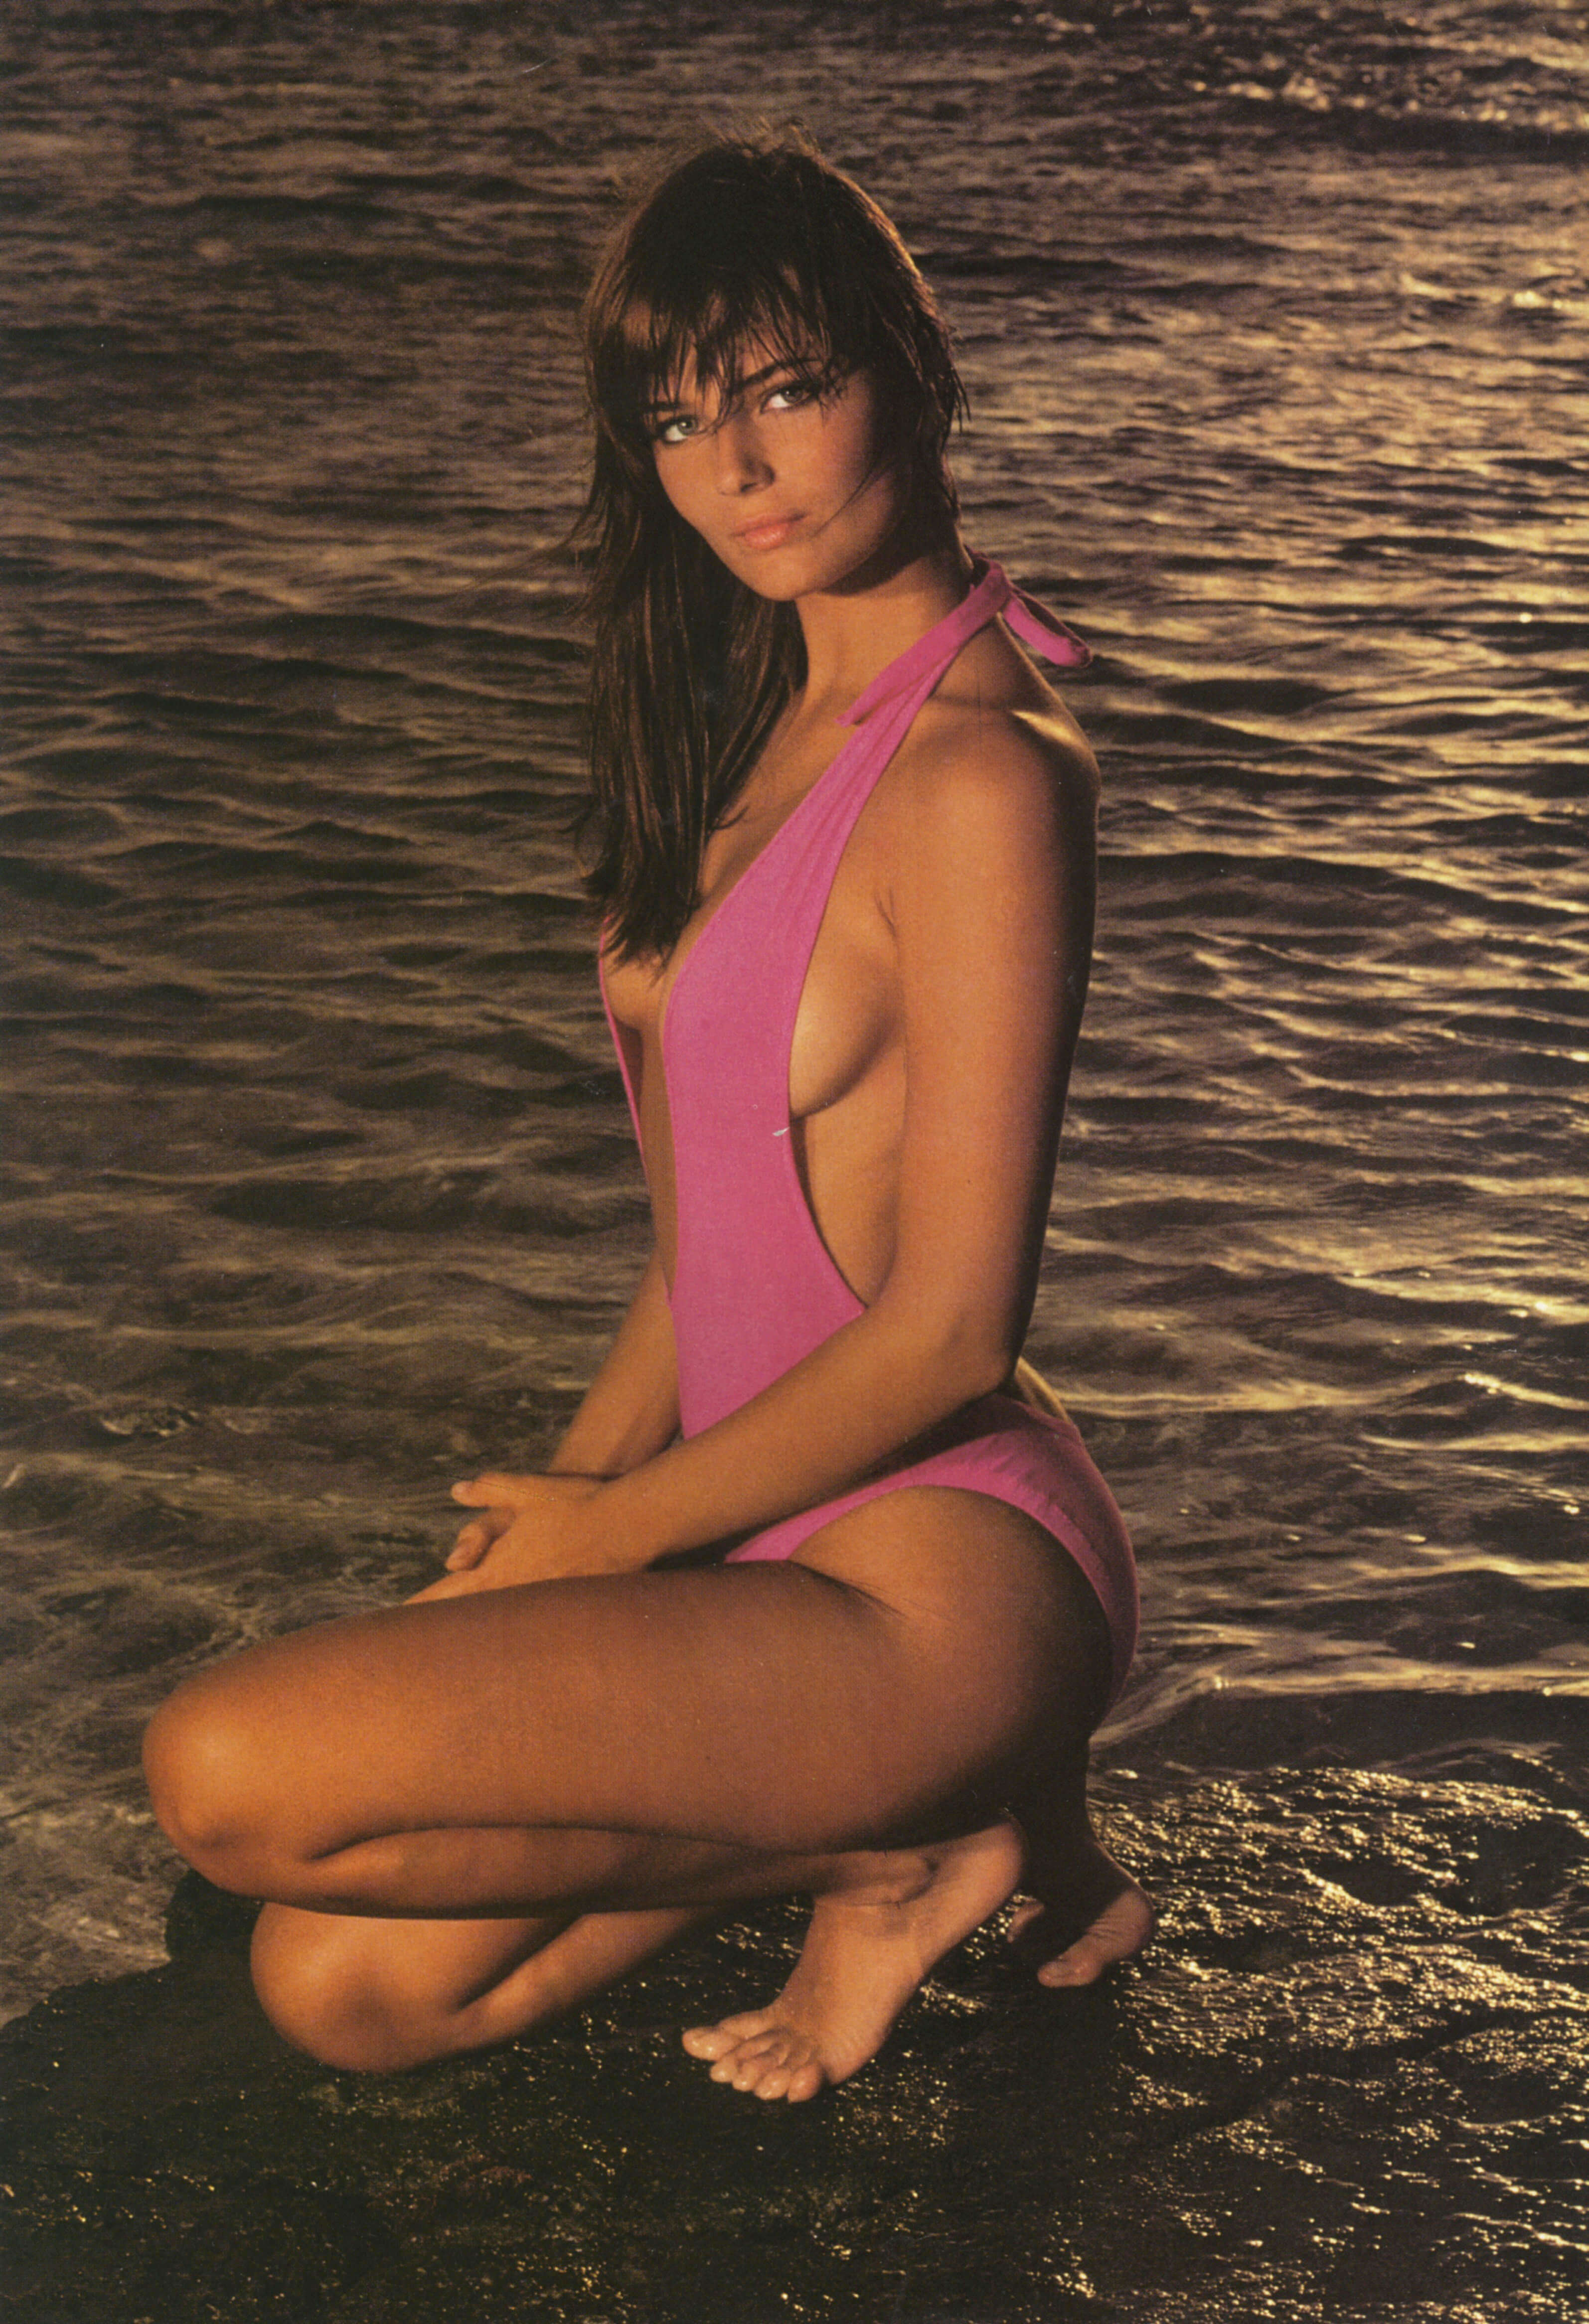 Paulina Porizkova awesome pictures